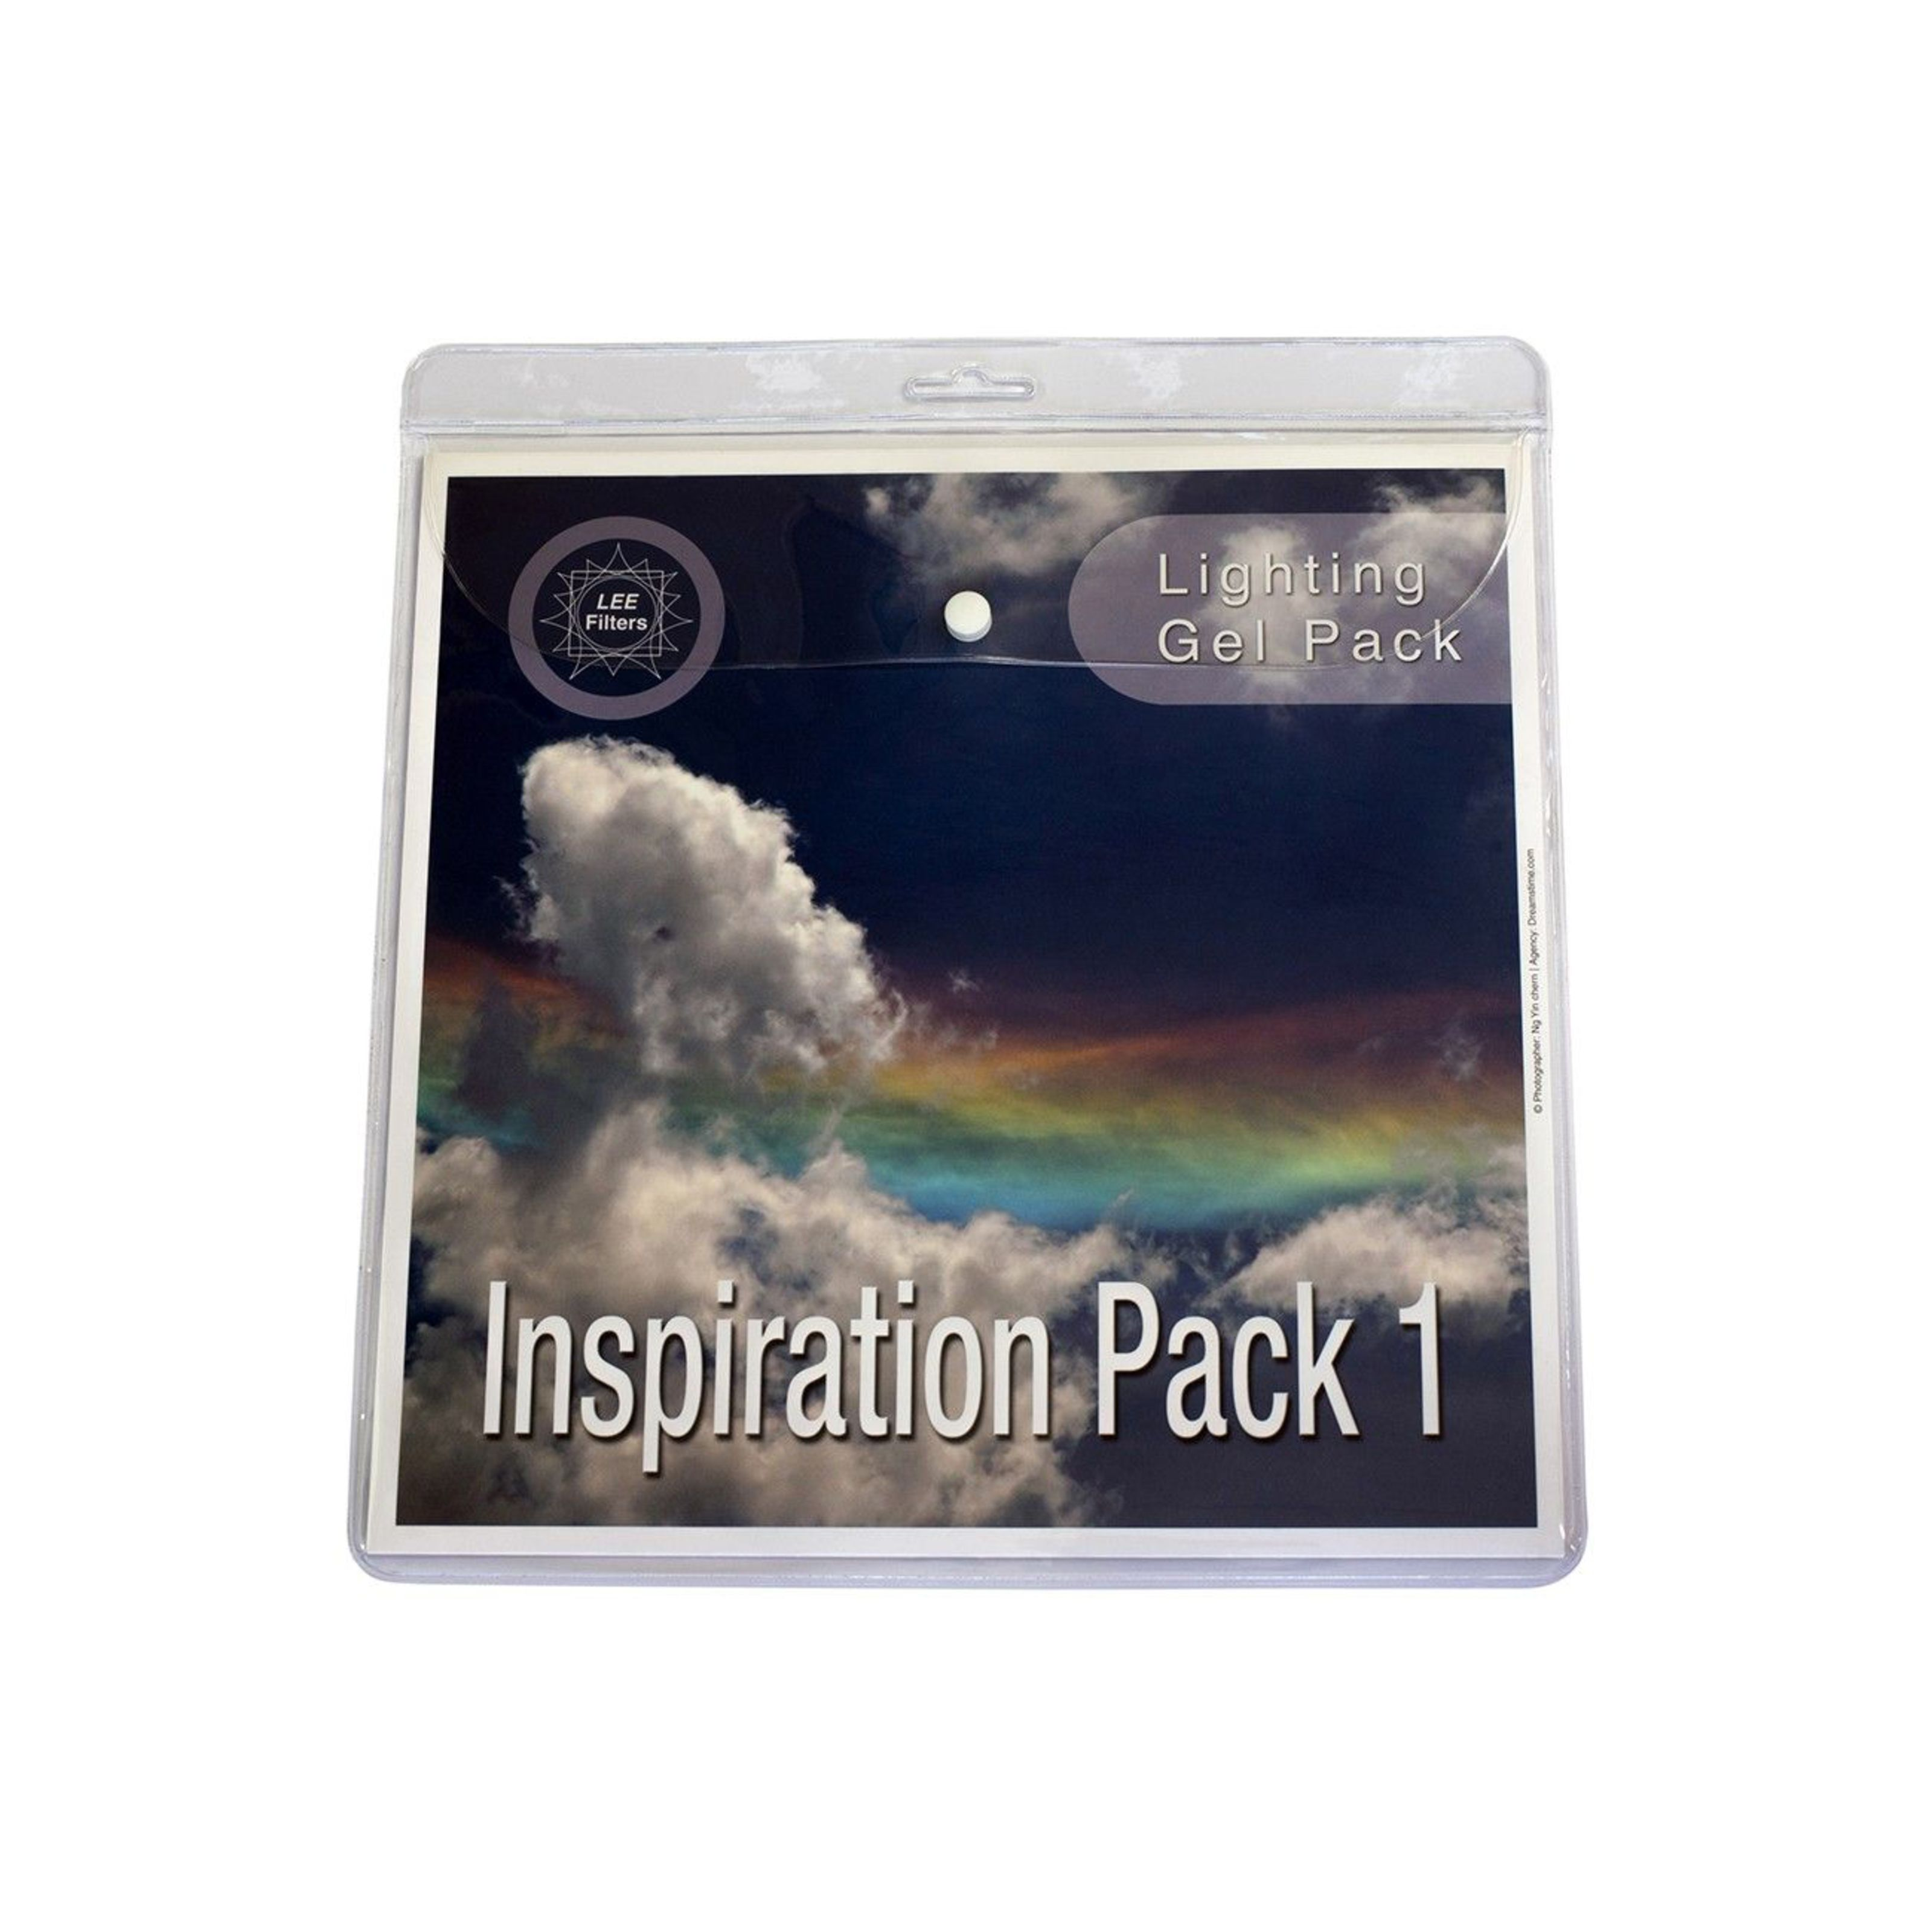 Lee - Inspiration Pack 1